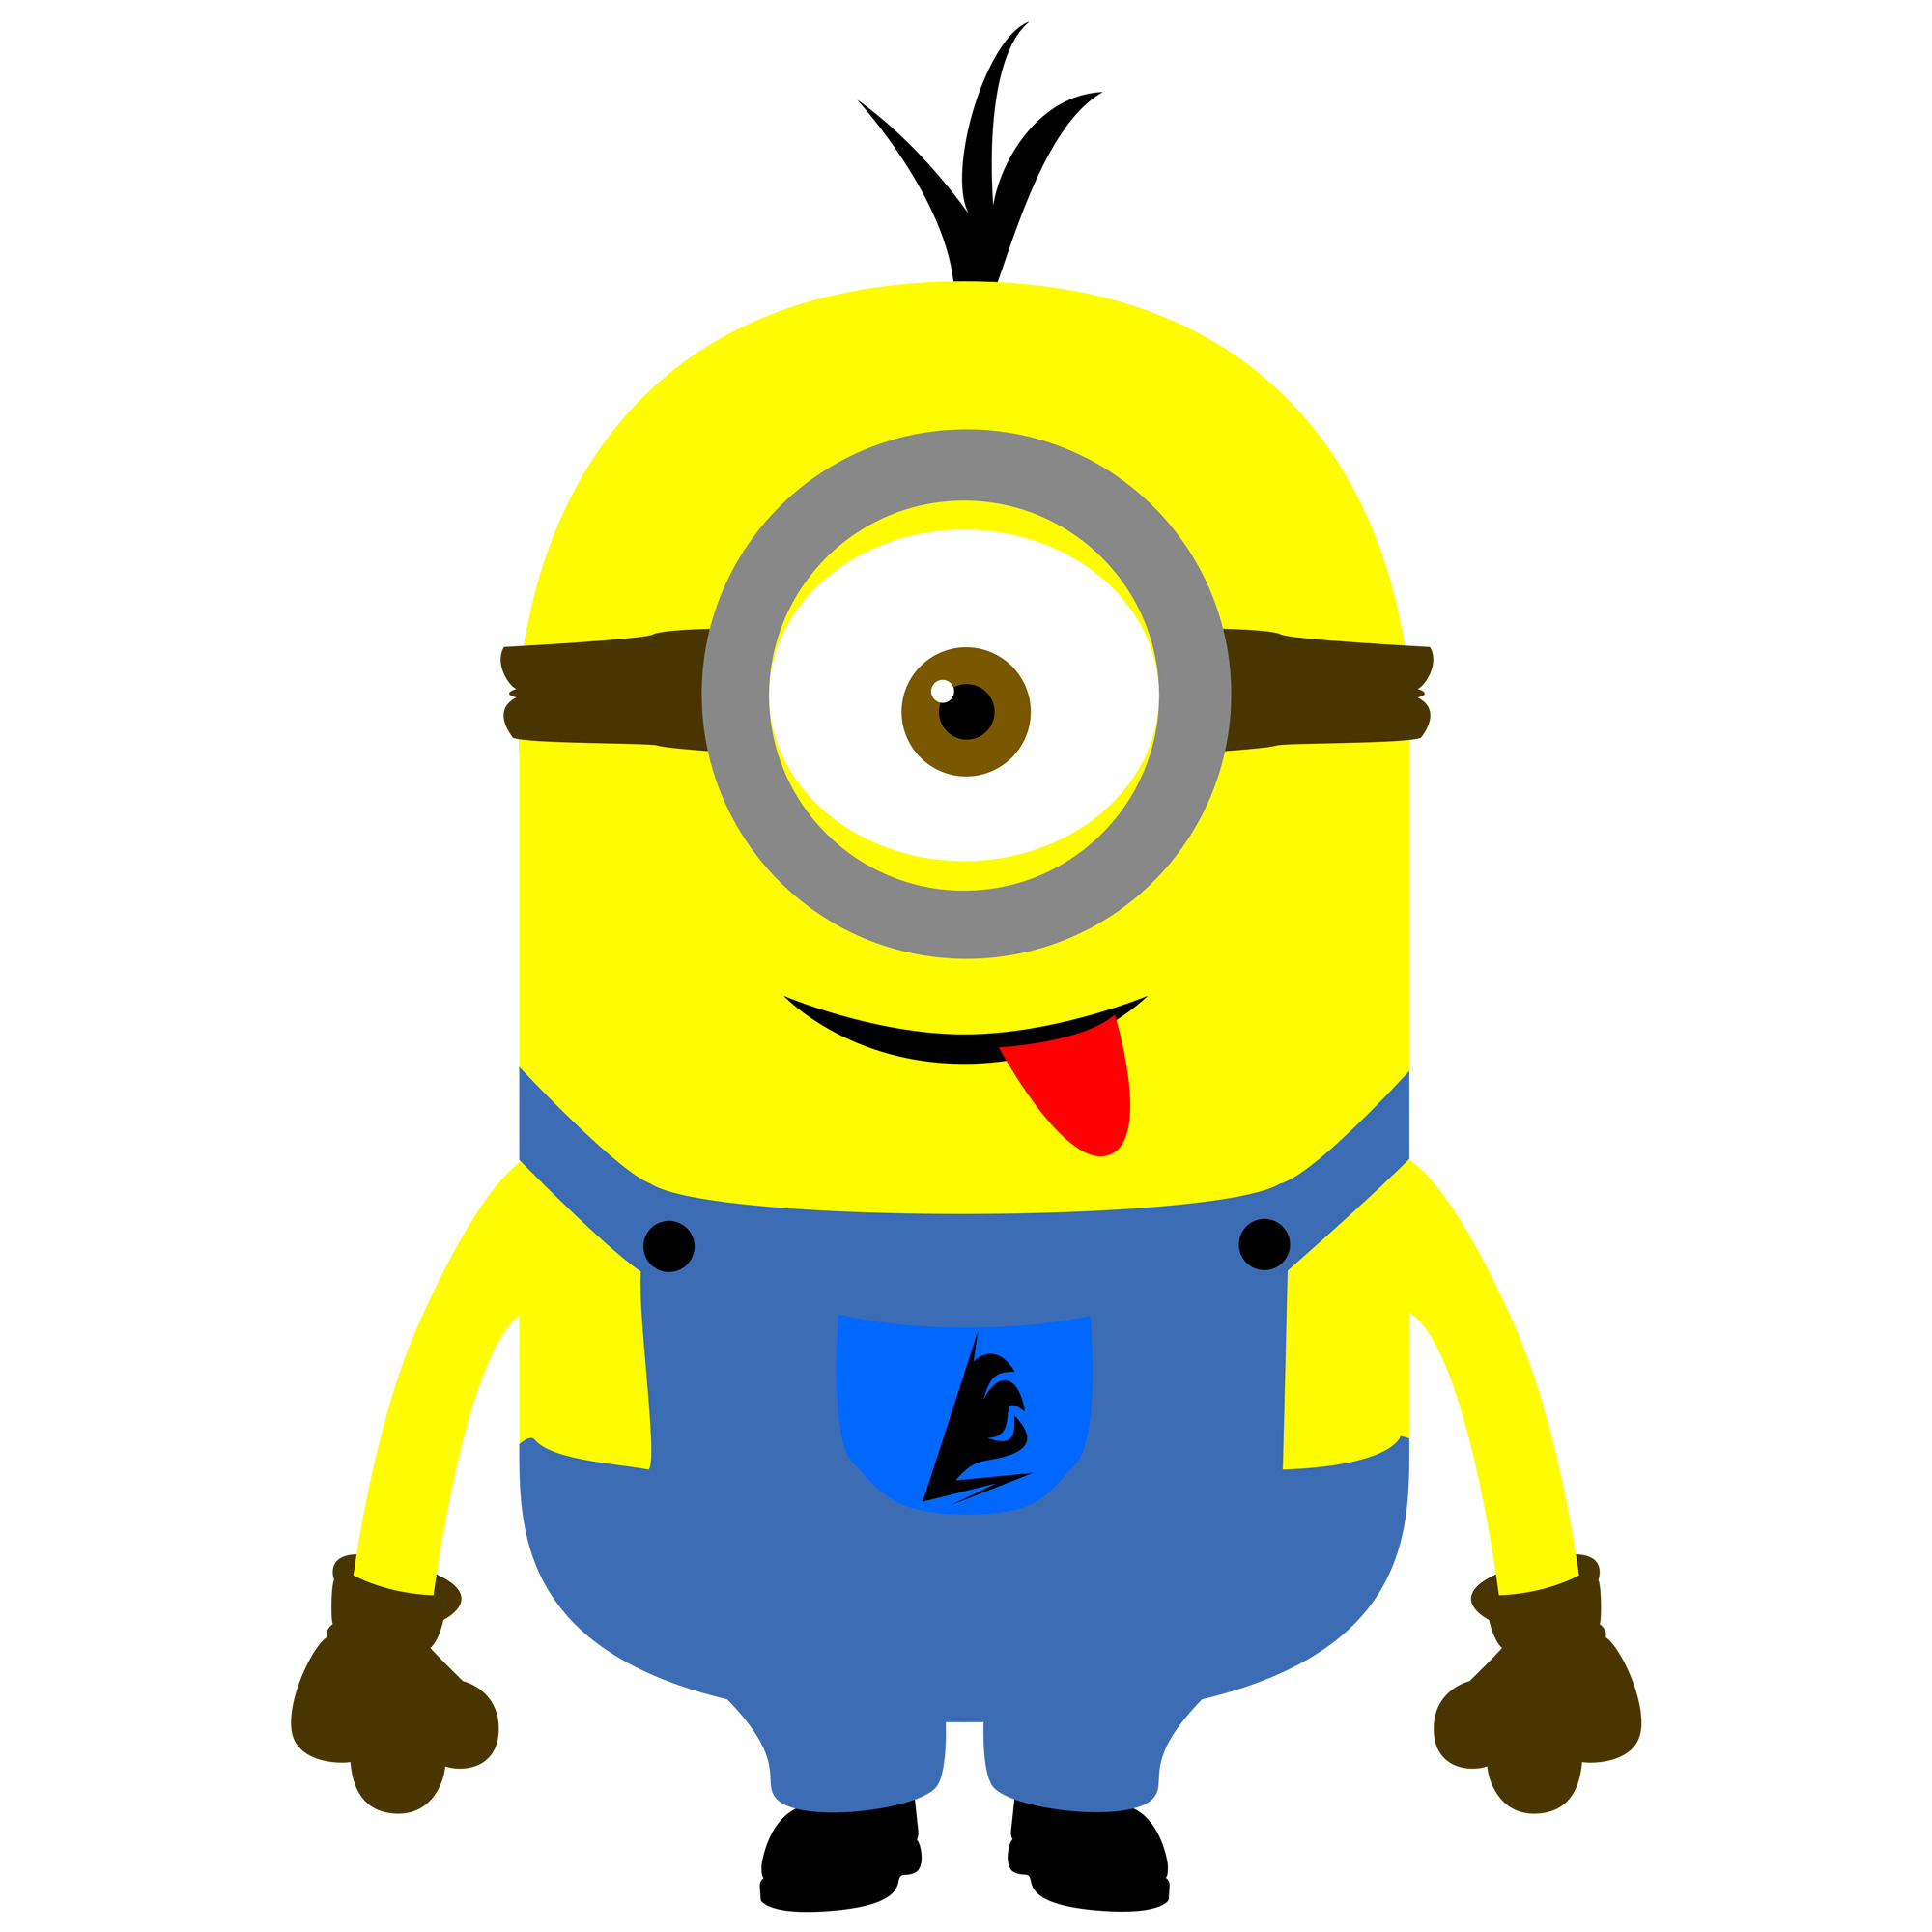 Minion single hand cutout clipart vector royalty free stock Free Free Minion Cliparts, Download Free Clip Art, Free Clip Art on ... vector royalty free stock